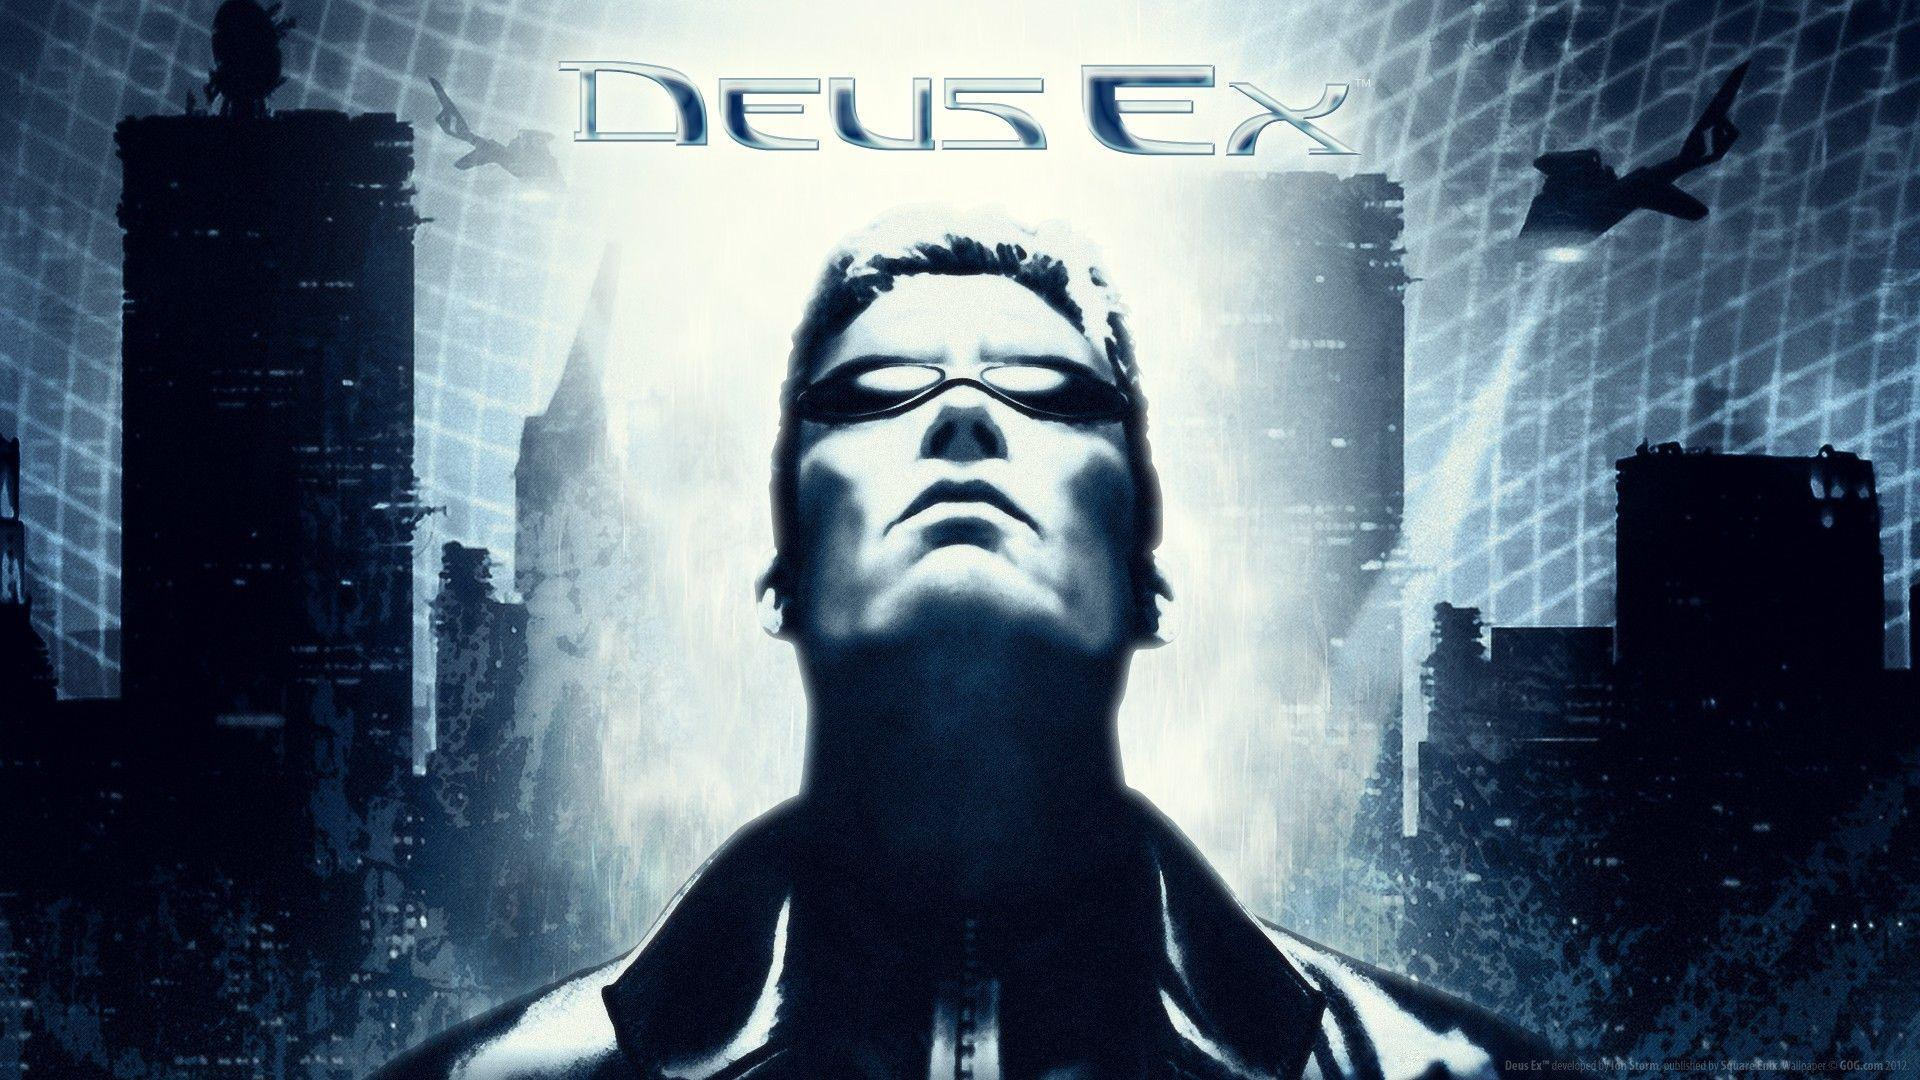 Download Deus Ex Wallpapers 1920x1080